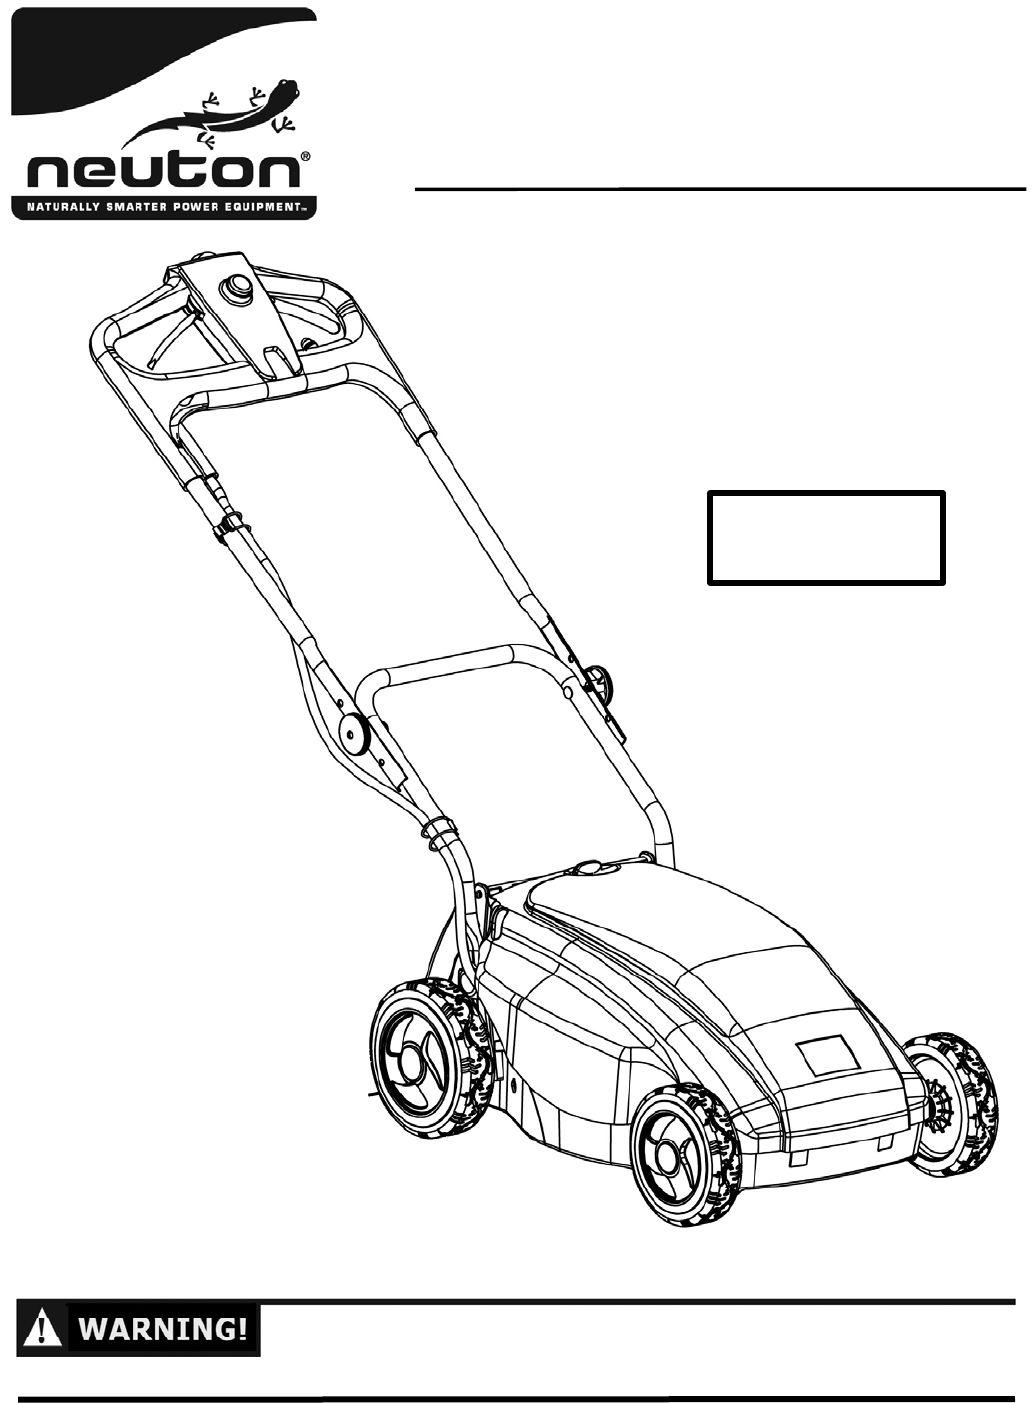 neuton mower wiring diagram 268001b neuton battery powered mower ce5 4 s o manual engl       ce5 4  battery powered mower ce5 4 s o manual